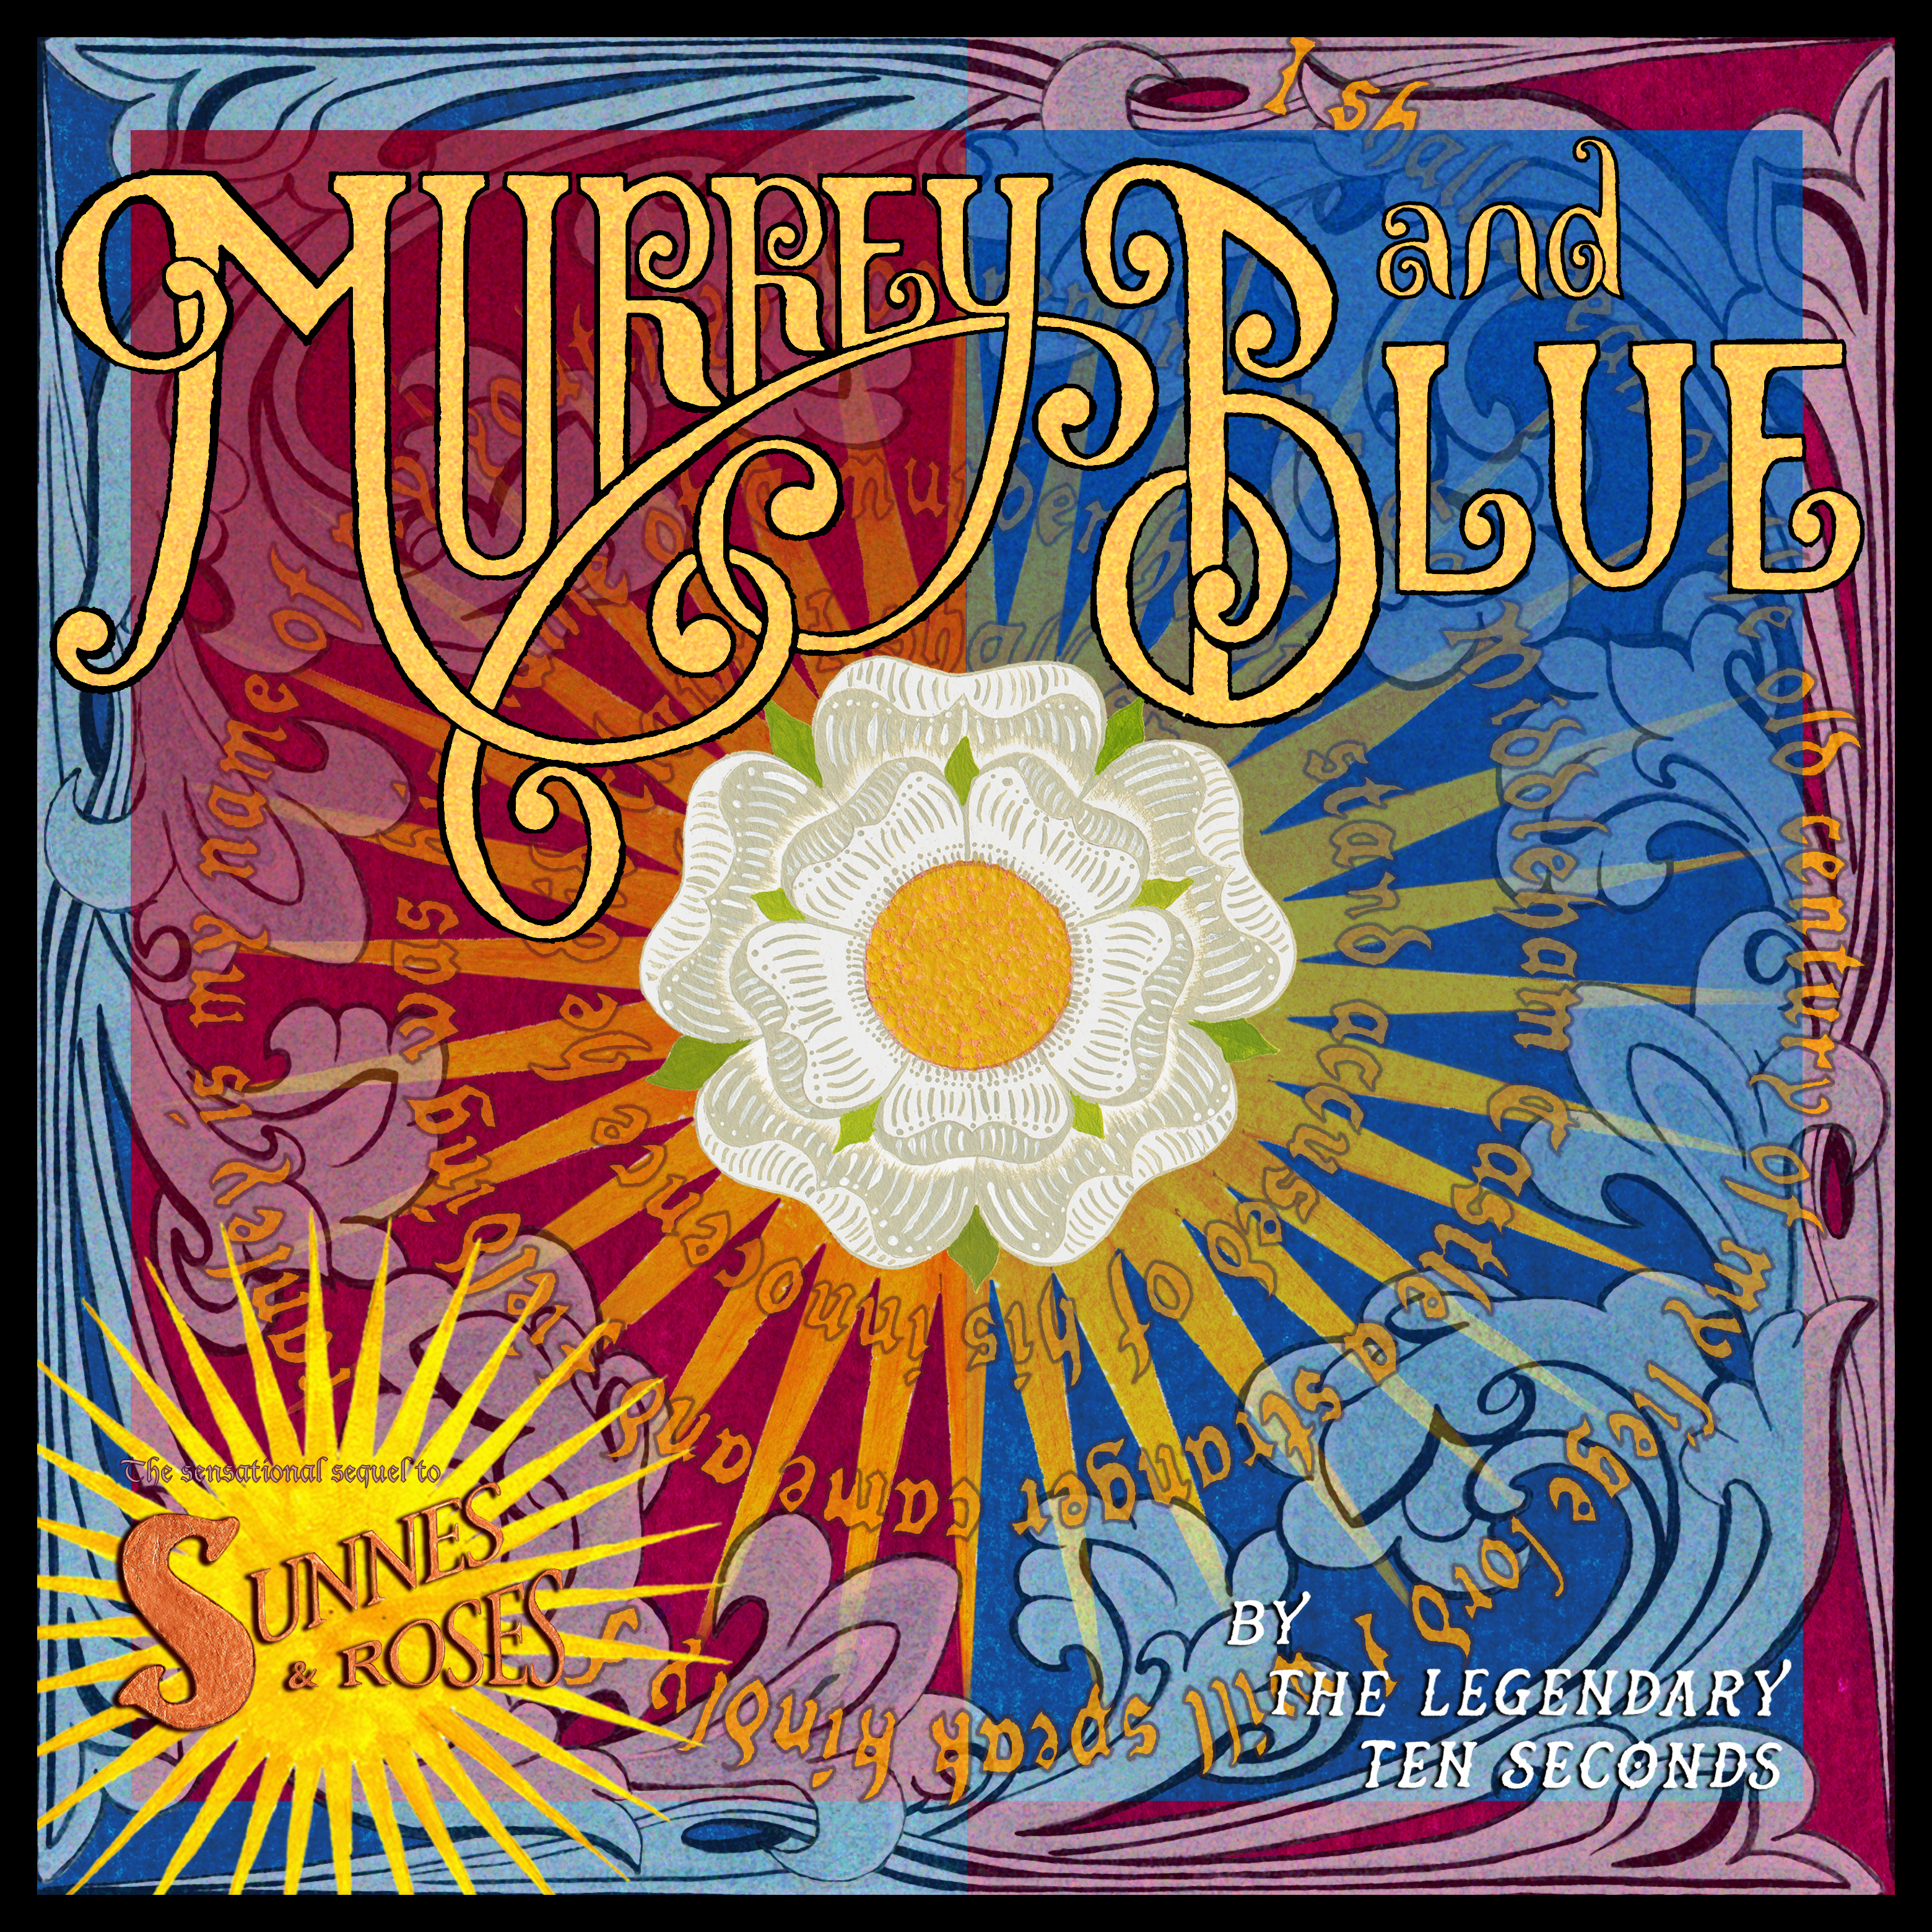 Murrey and Blue